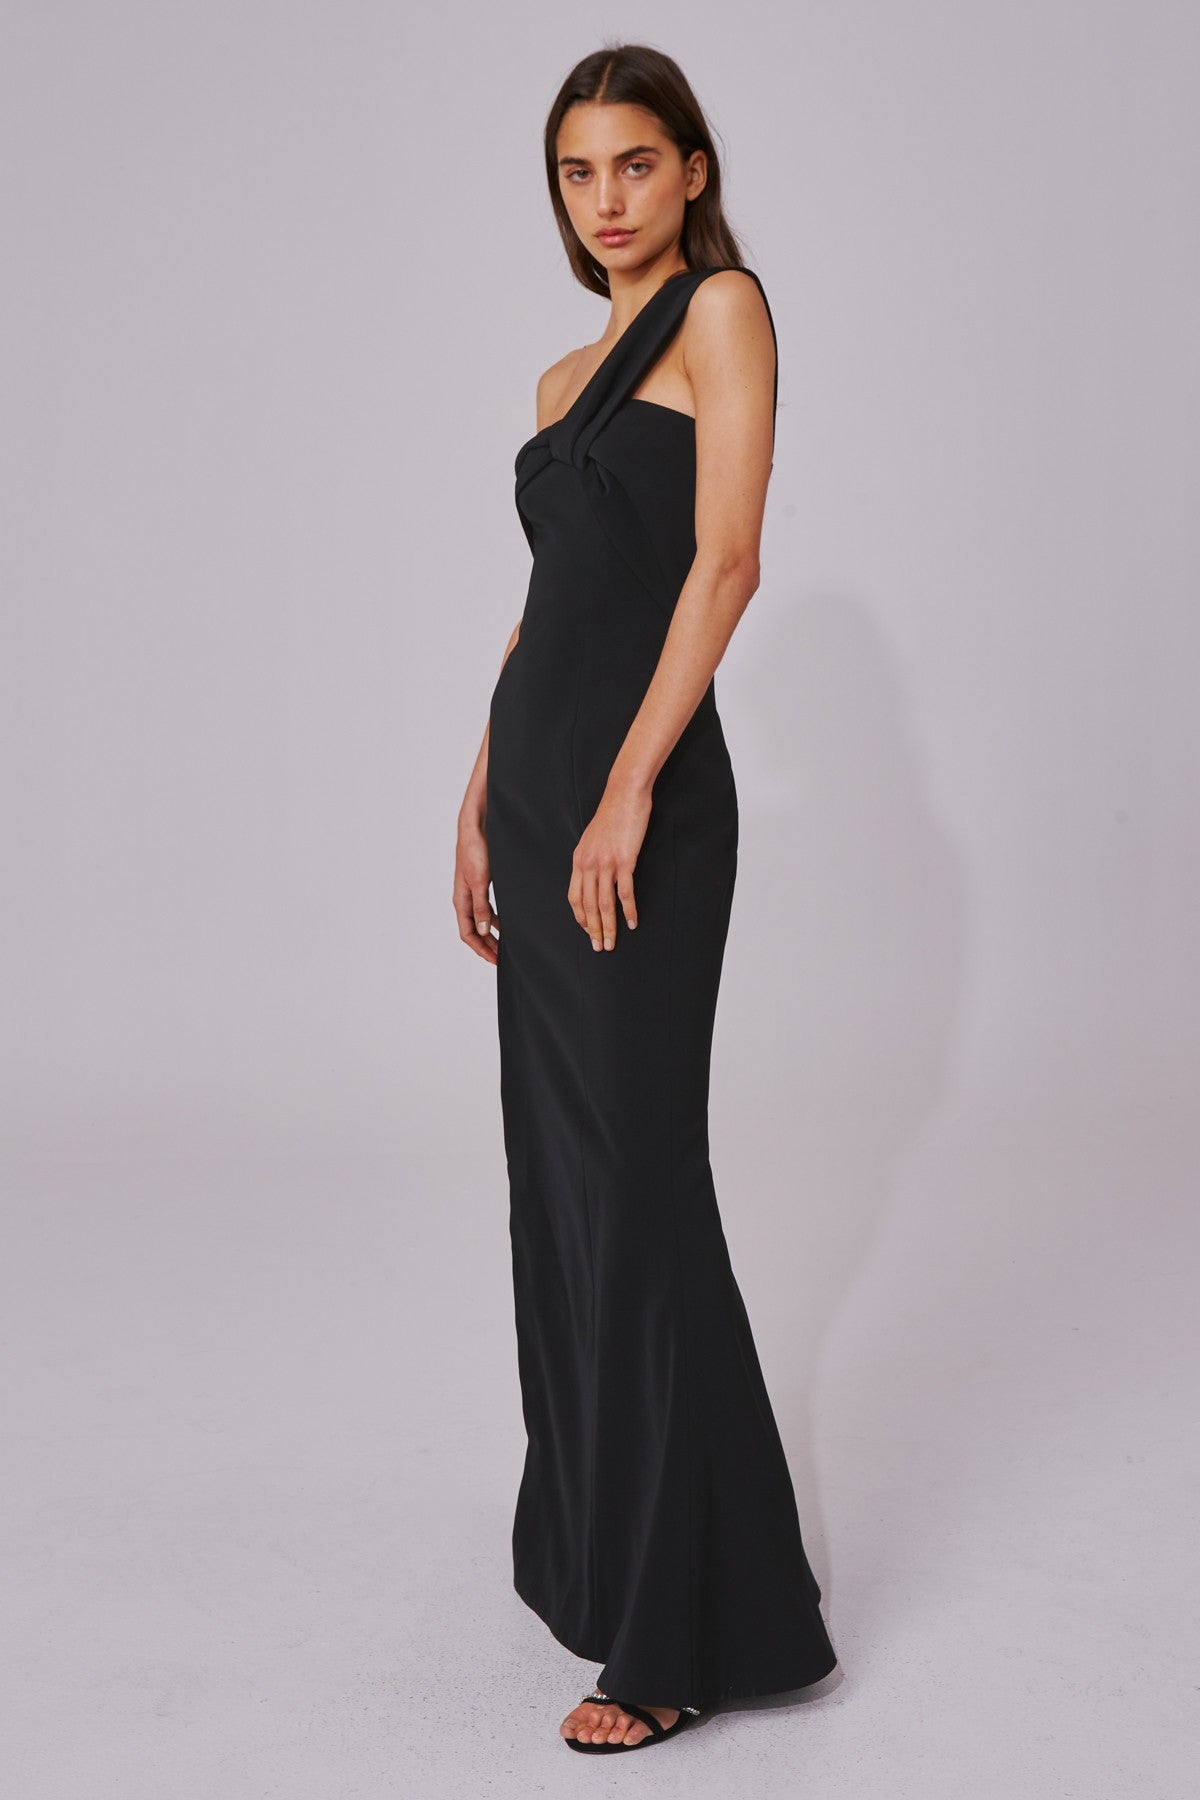 CALIBER GOWN black